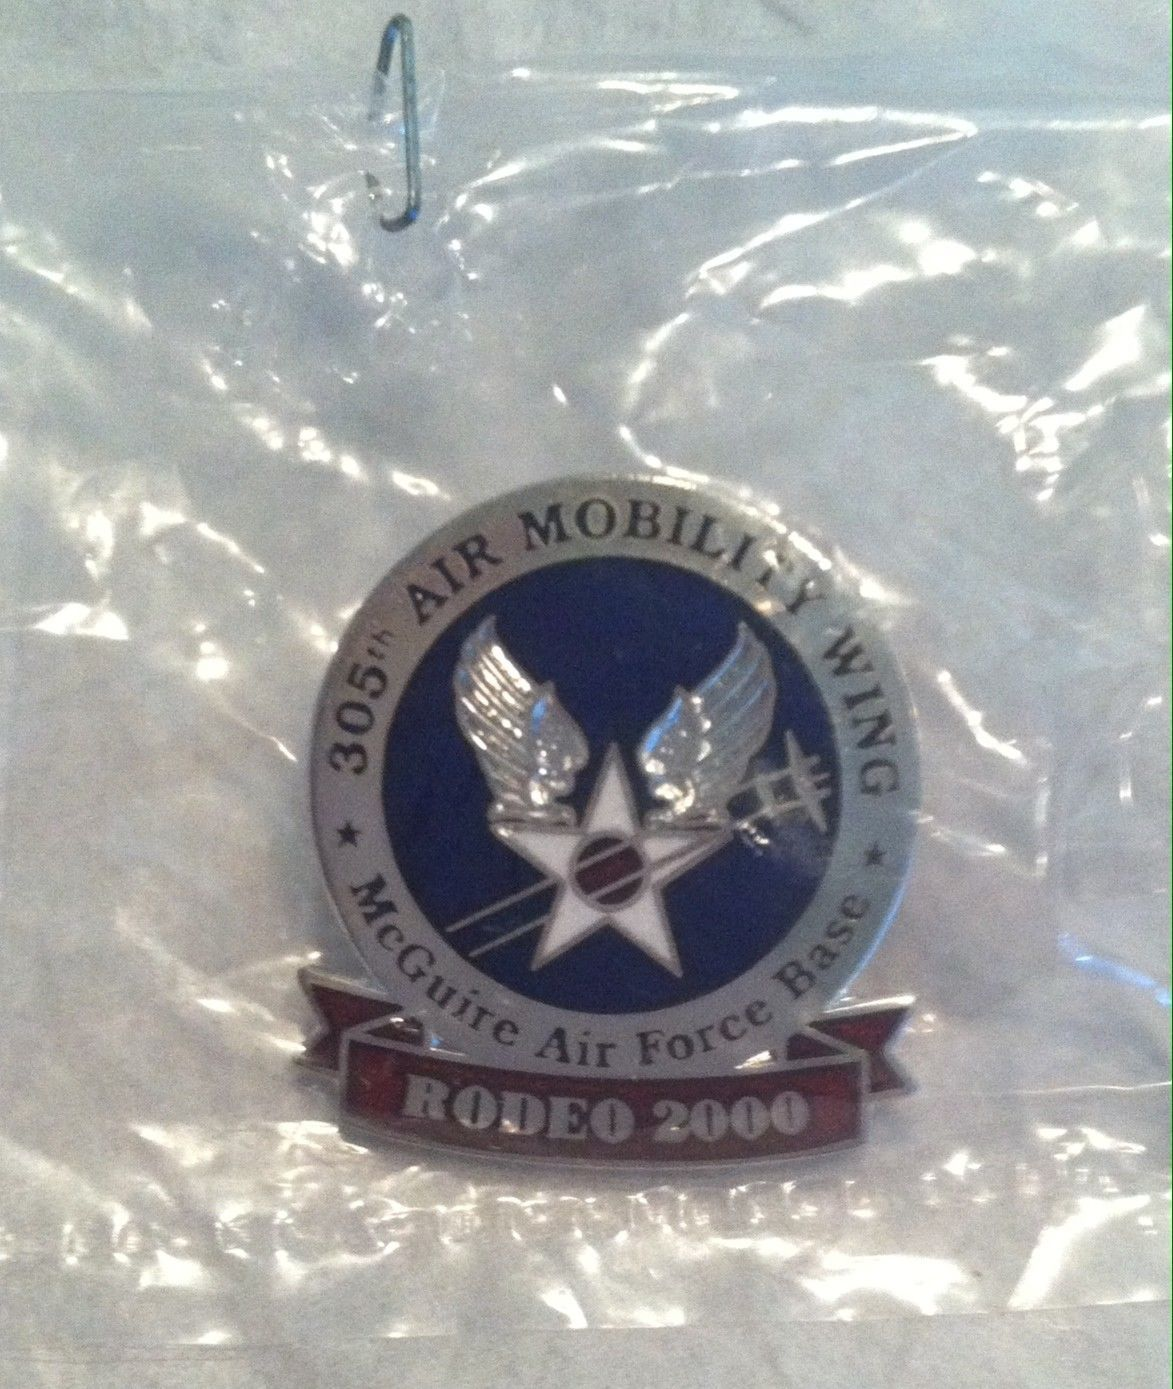 MCGUIRE AFB, NEW JERSEY, 305TH AMW Lapel Hat Pin eBay